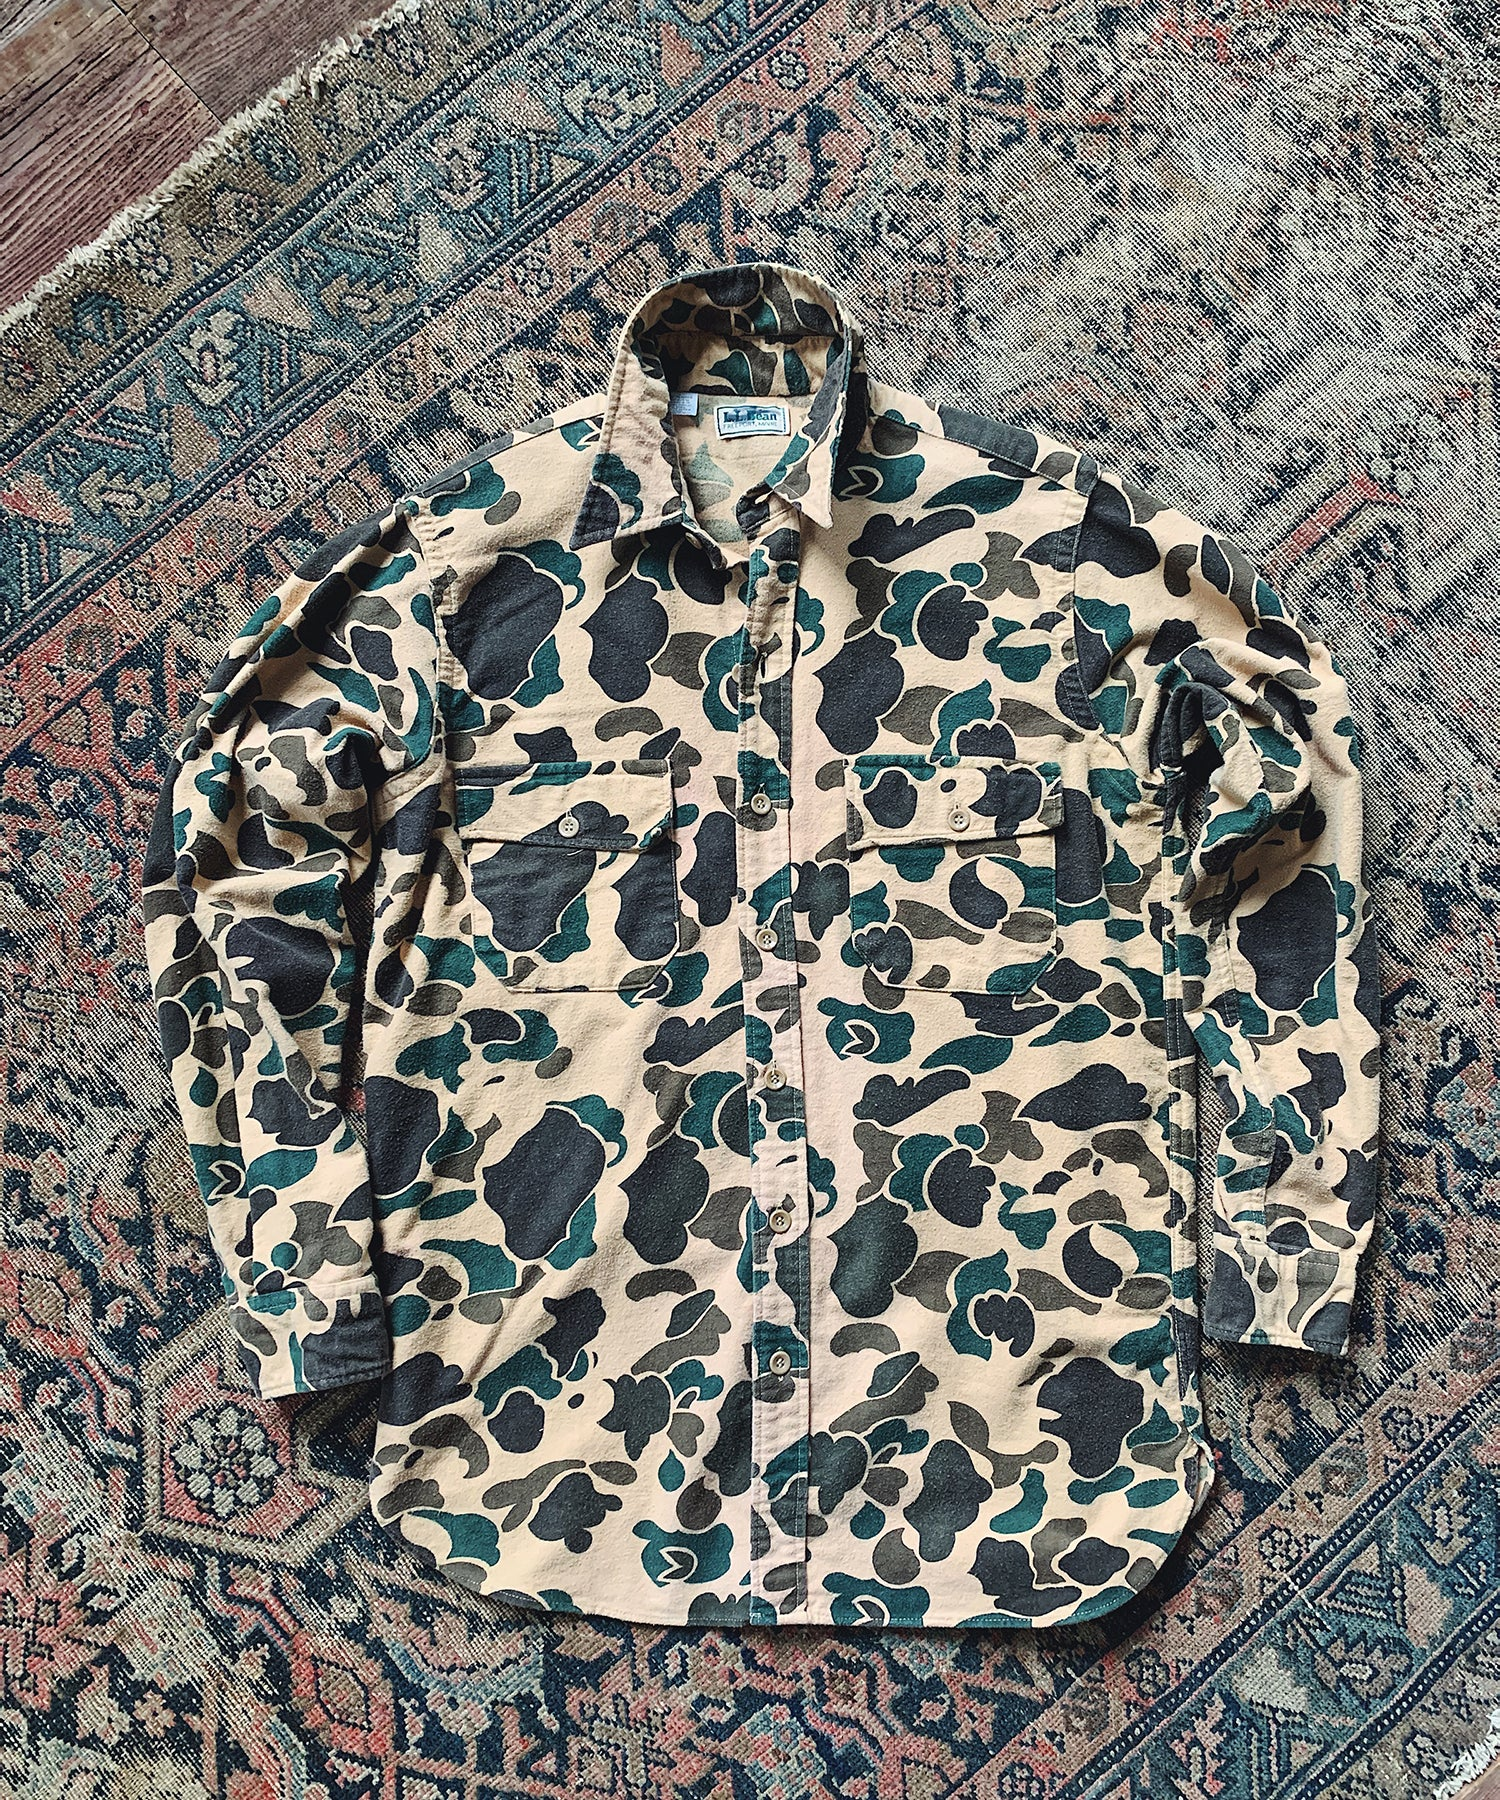 Item #16 - Todd Snyder x Wooden Sleepers 1980's Chamois Shirt in Duck Camo - SOLD OUT